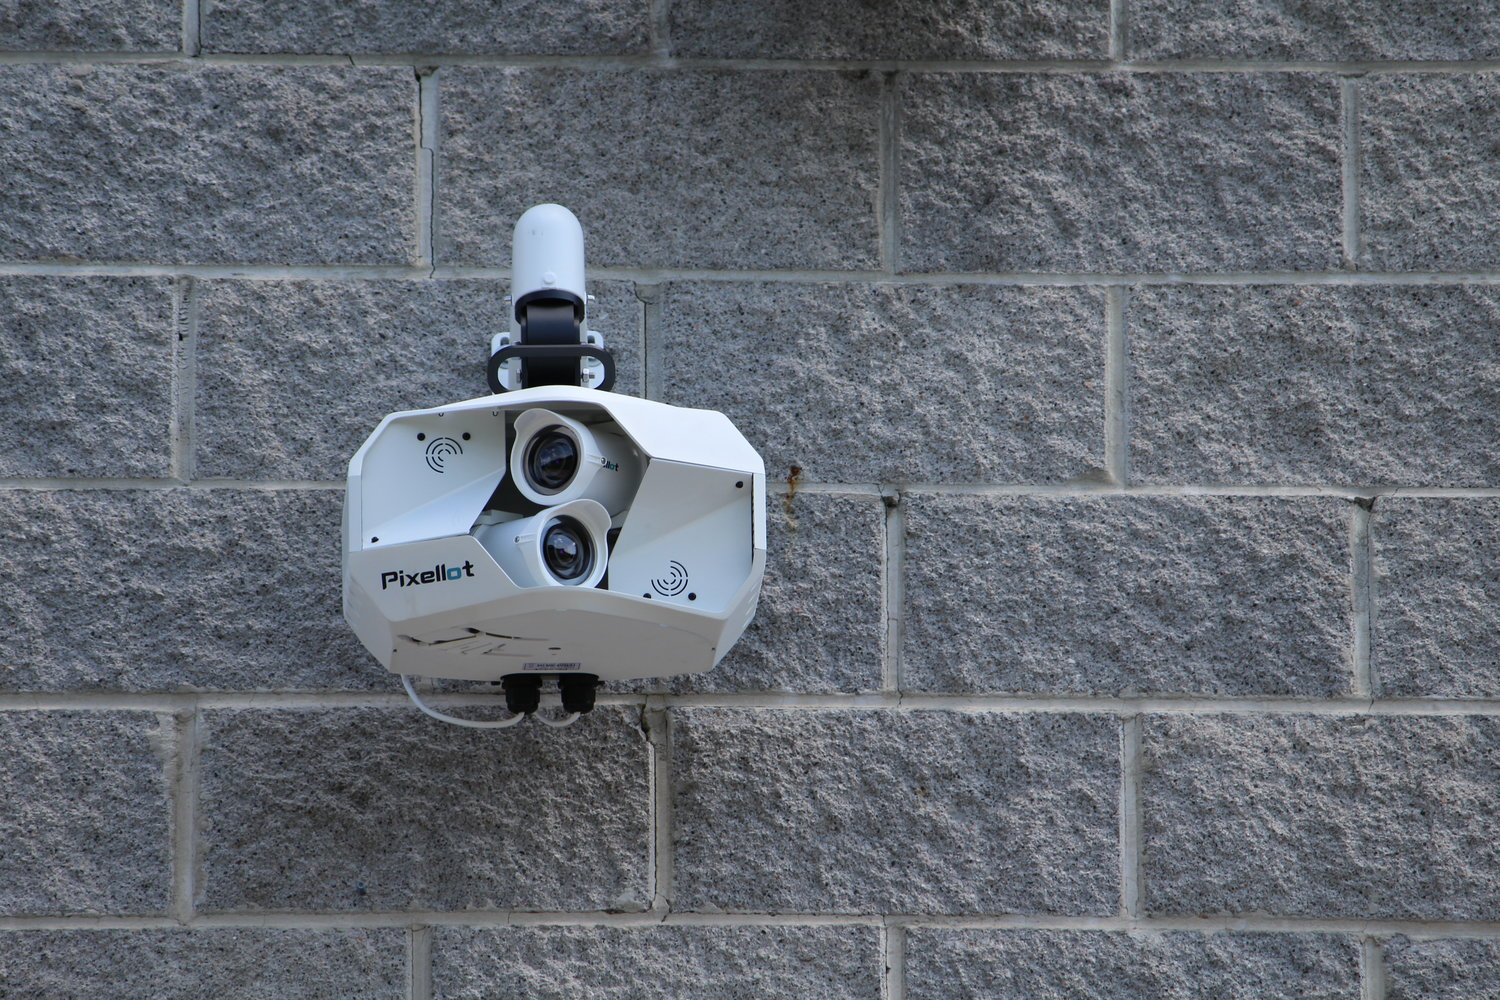 The Pixellot automated solutions camera, pictured here at Horace-Roberts Field in Dora, has been installed at most of the Walker County schools in the past week. The cameras will be used to broadcast live sporting events to the NFHS Network.